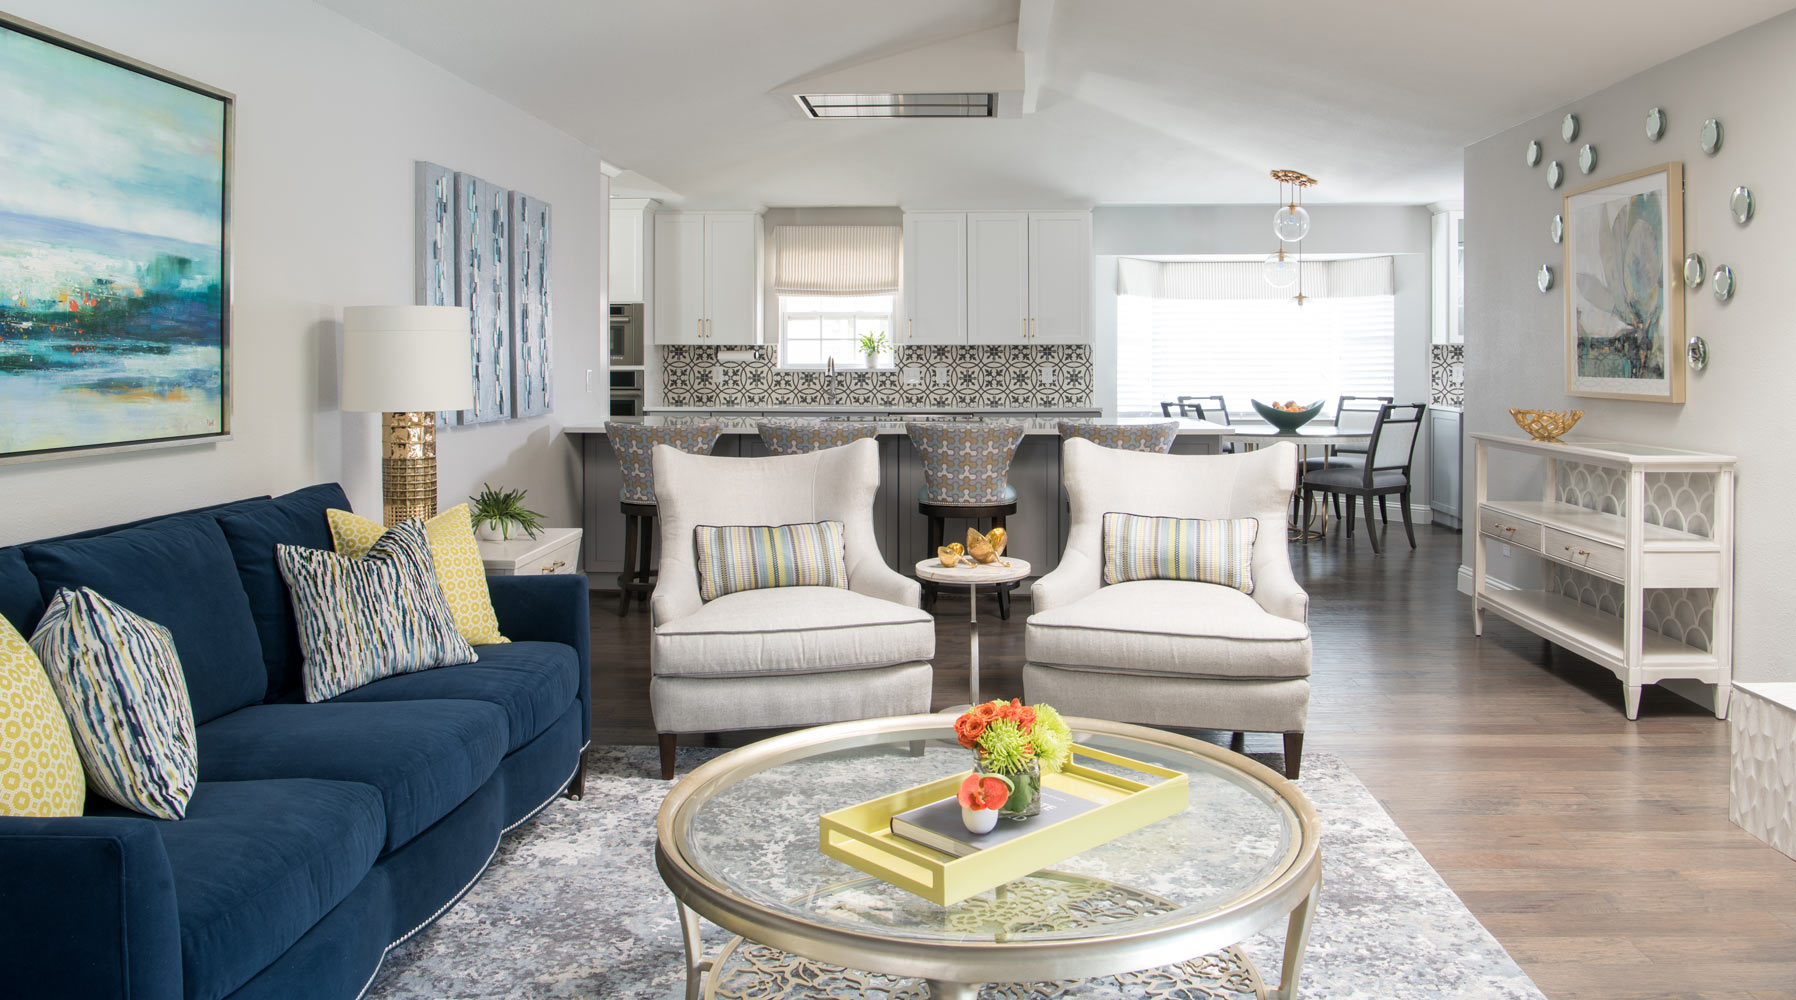 Transitional d cor done right in dallas interior design - Images of living room decor ...